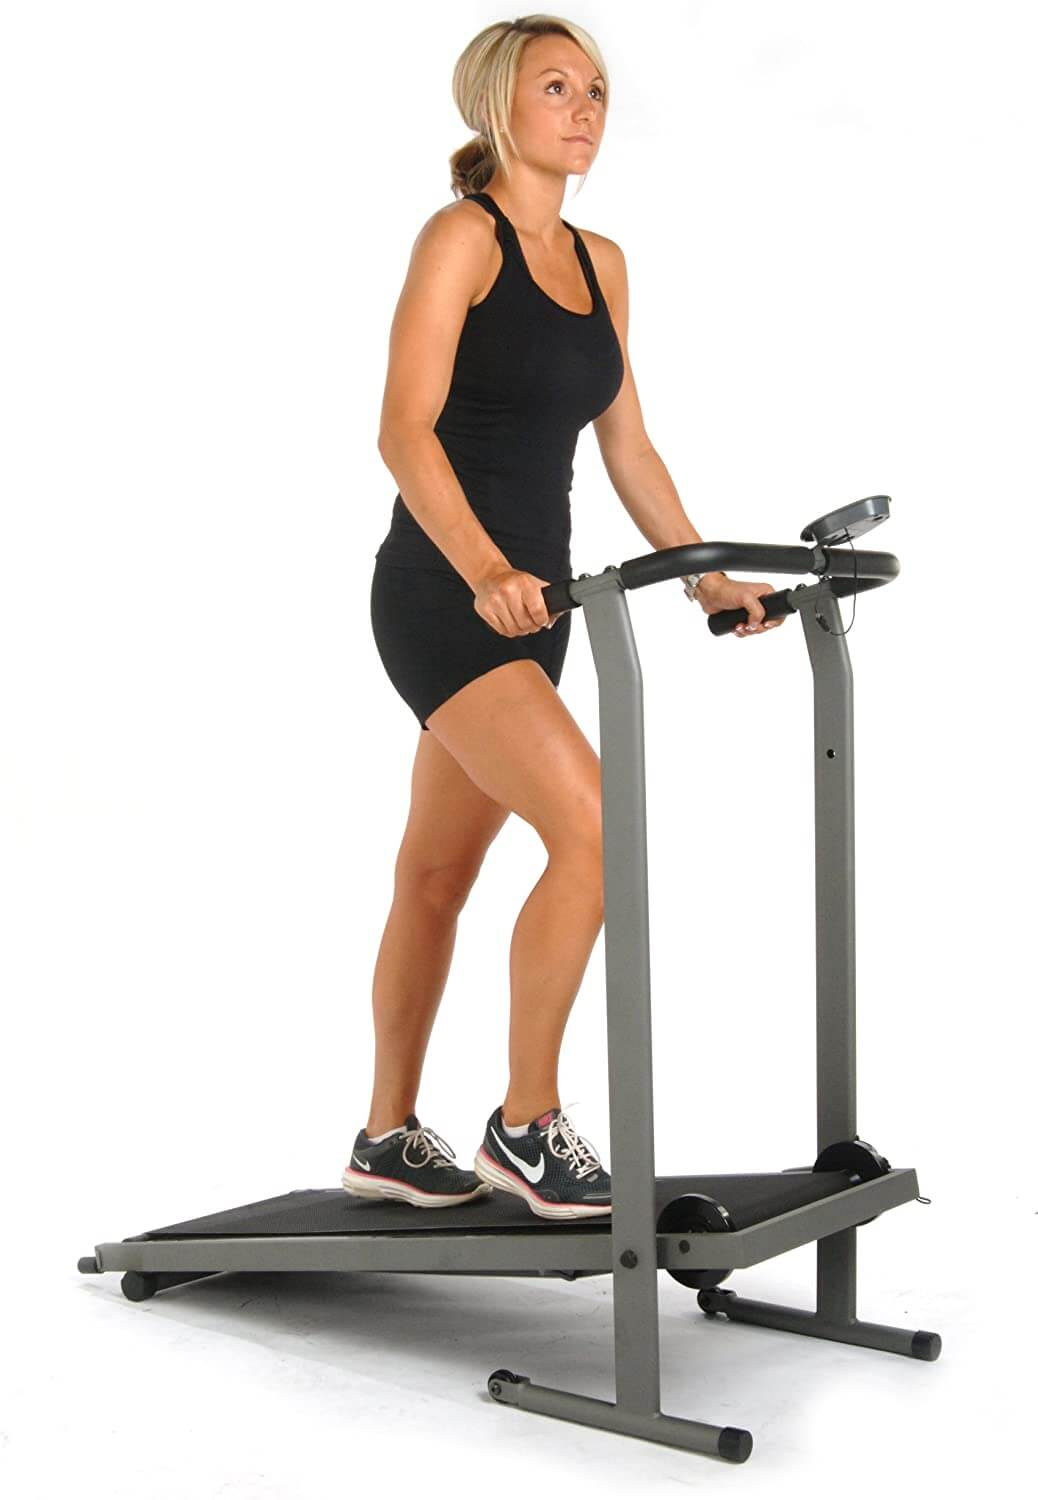 In depth review of Stamina Inmotion Manual Treadmill